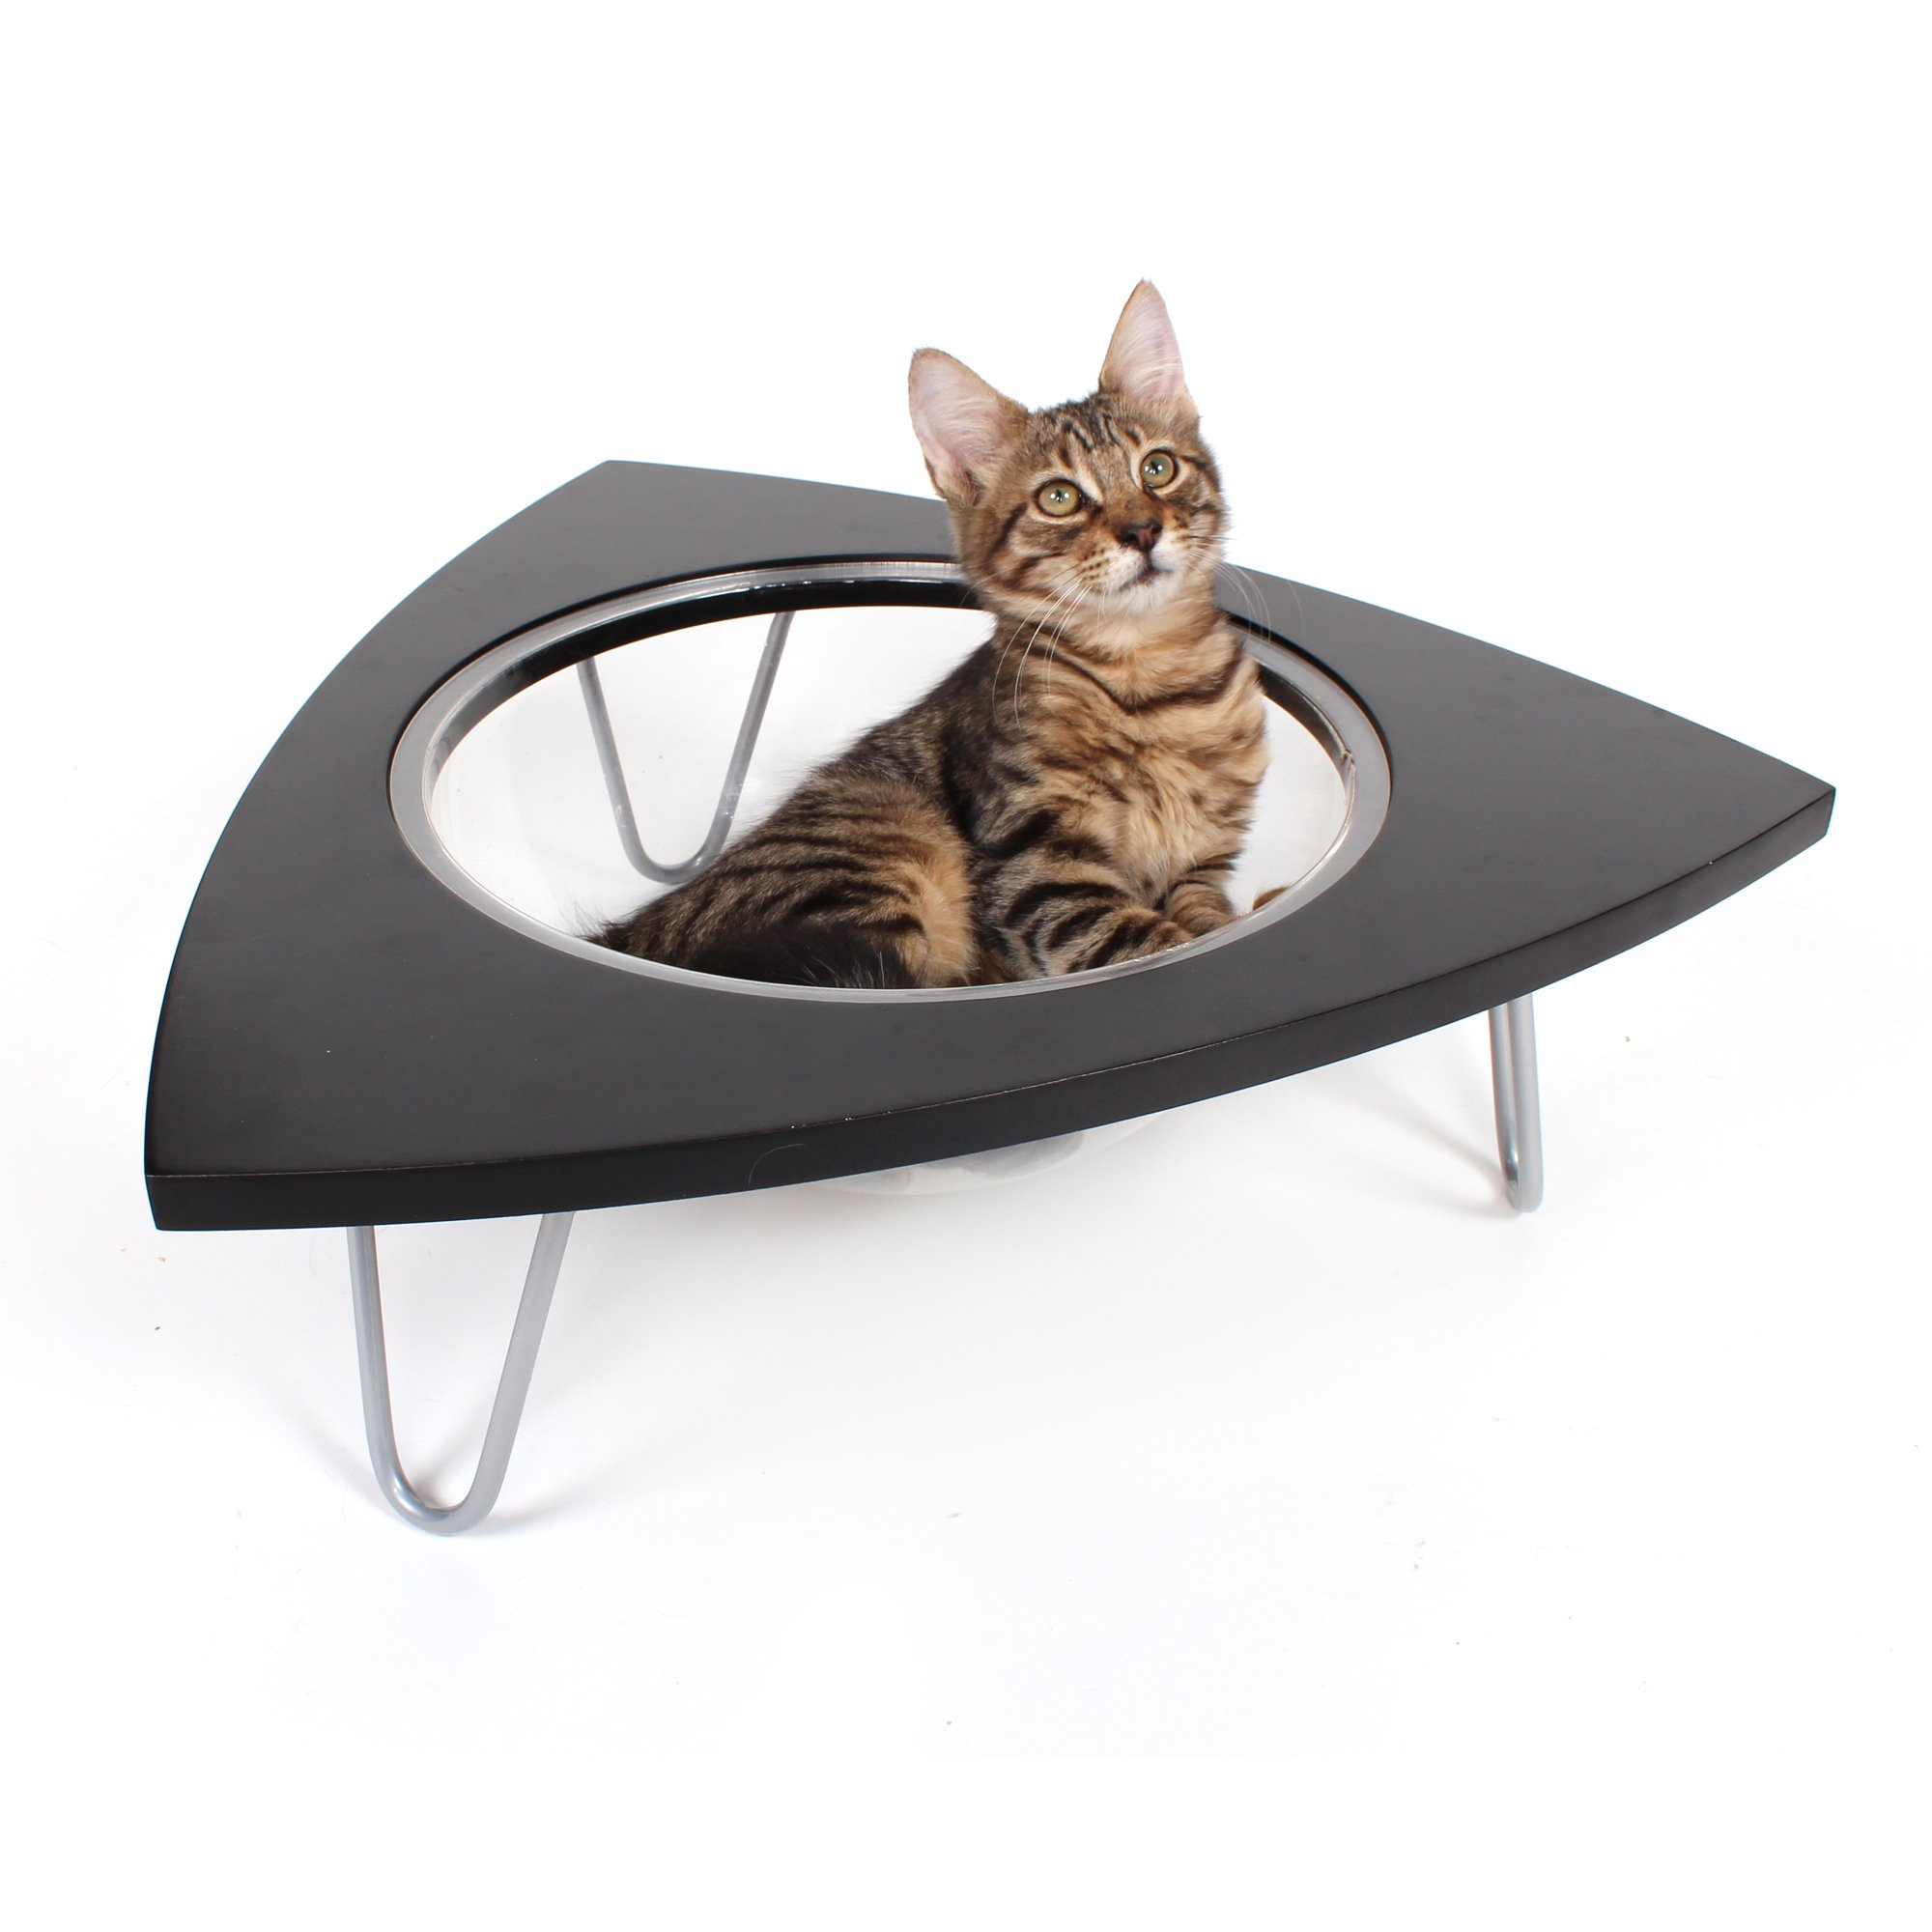 """Hauspanther Collection By Primetime Black Tripod For Cat, 20"""" L X 20"""" W X 6.5"""" H, Small, Black / Transparent"""